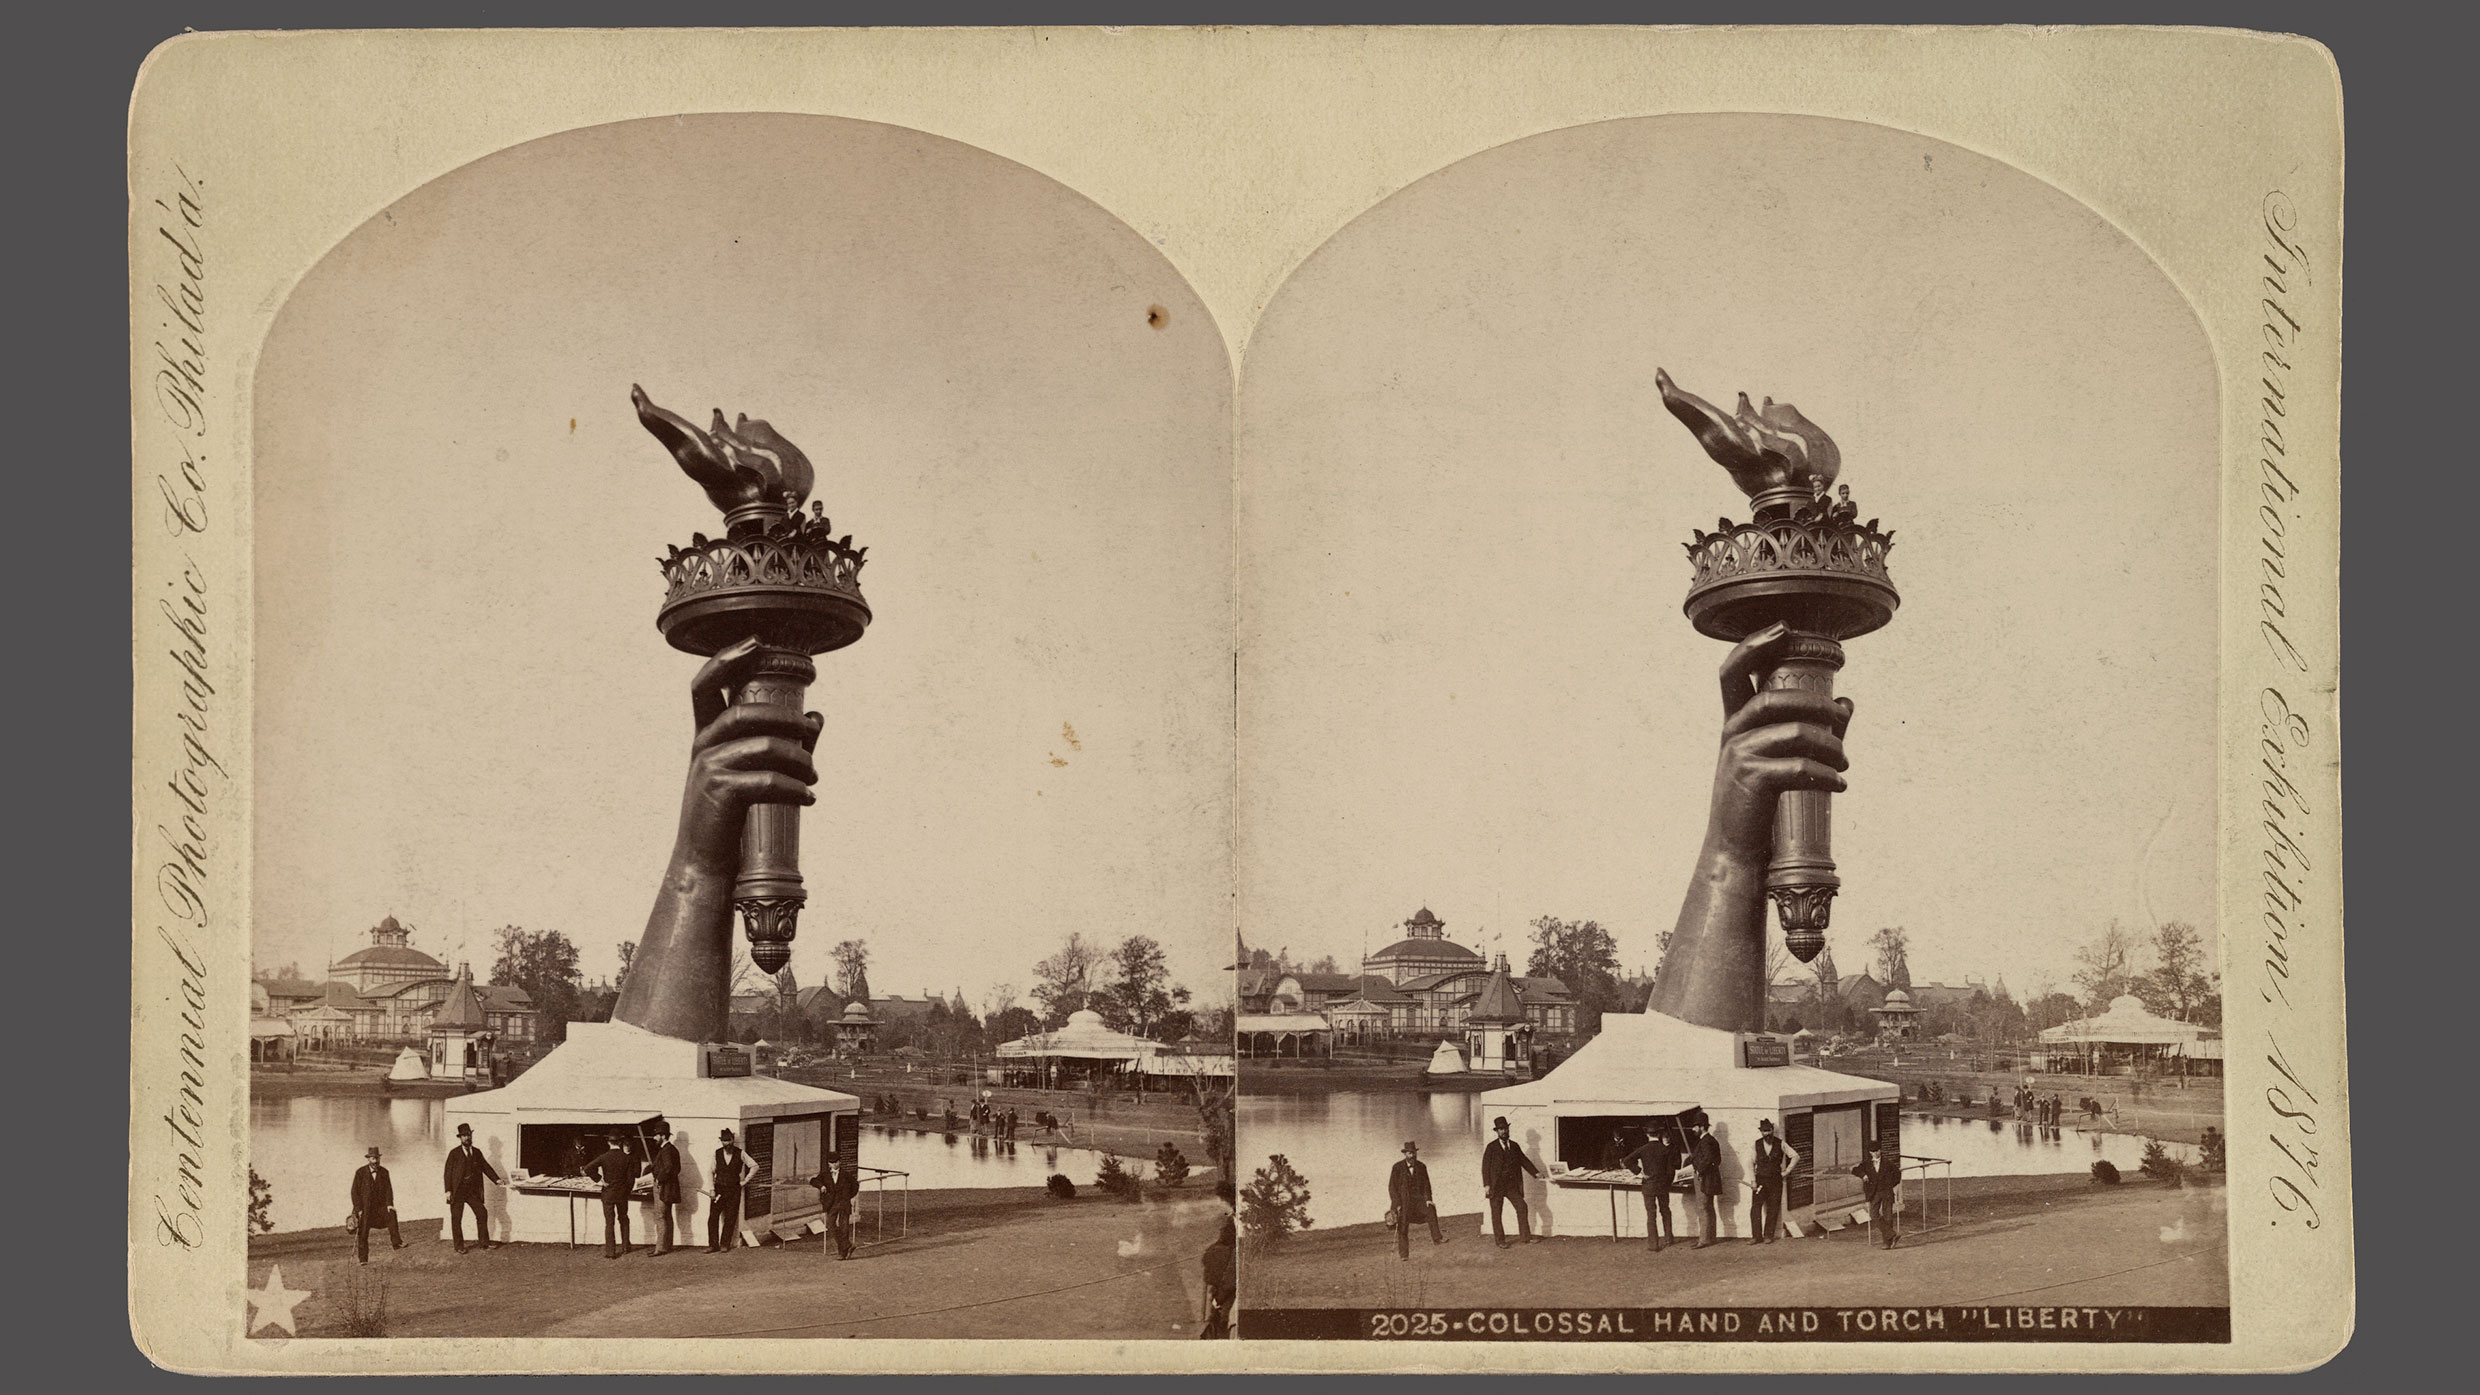 Stereograph showing the Statue of Liberty's hand installed at the 1876 Philadelphia Centennial Exhibition. Image: Courtesy the Library of Congress